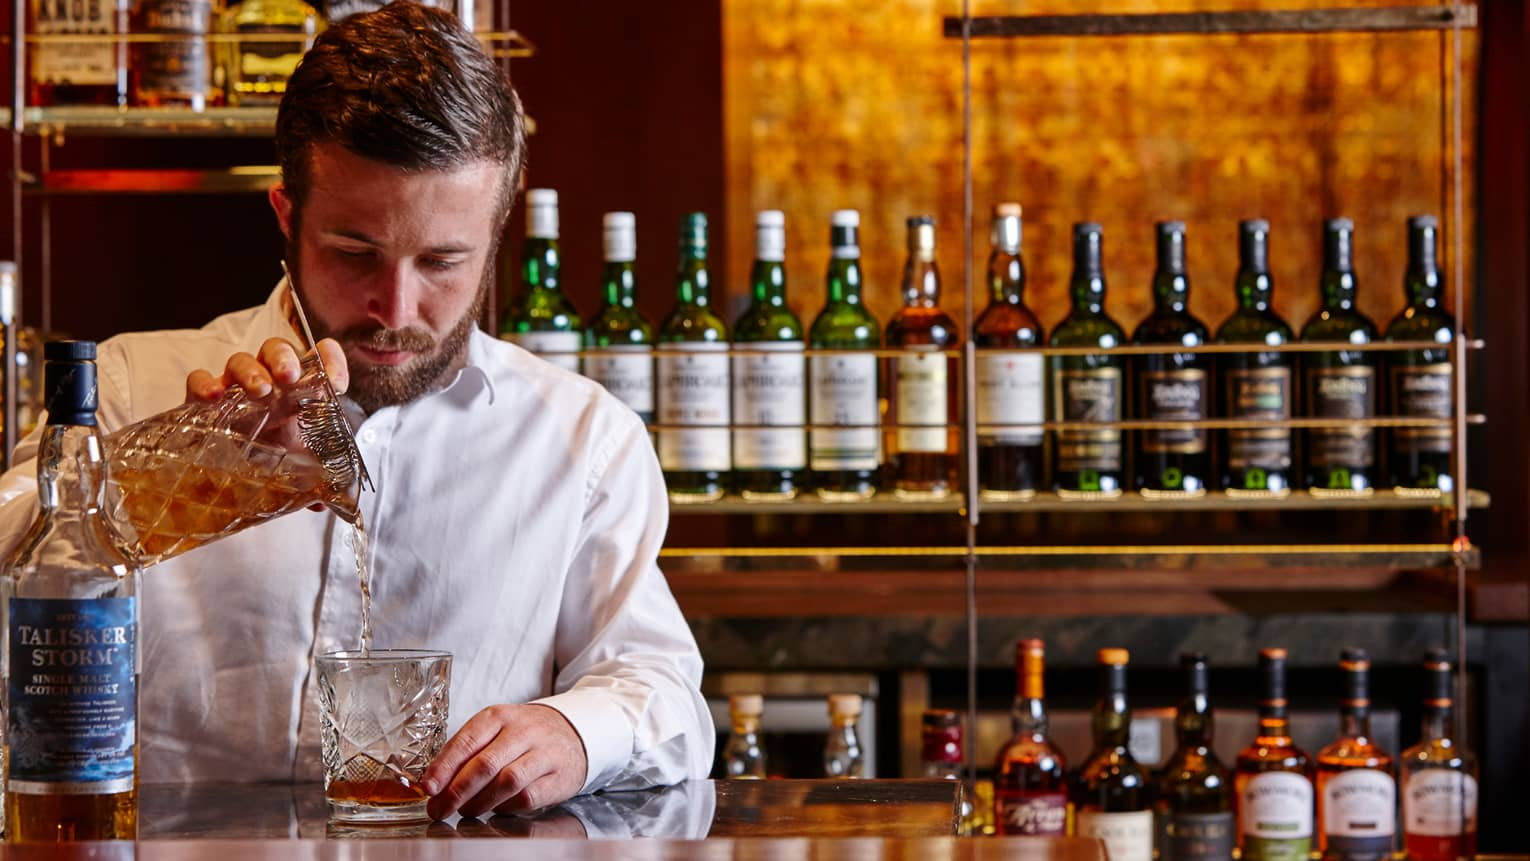 Grain bartender pours single malt whisky from crystal pitcher into glass